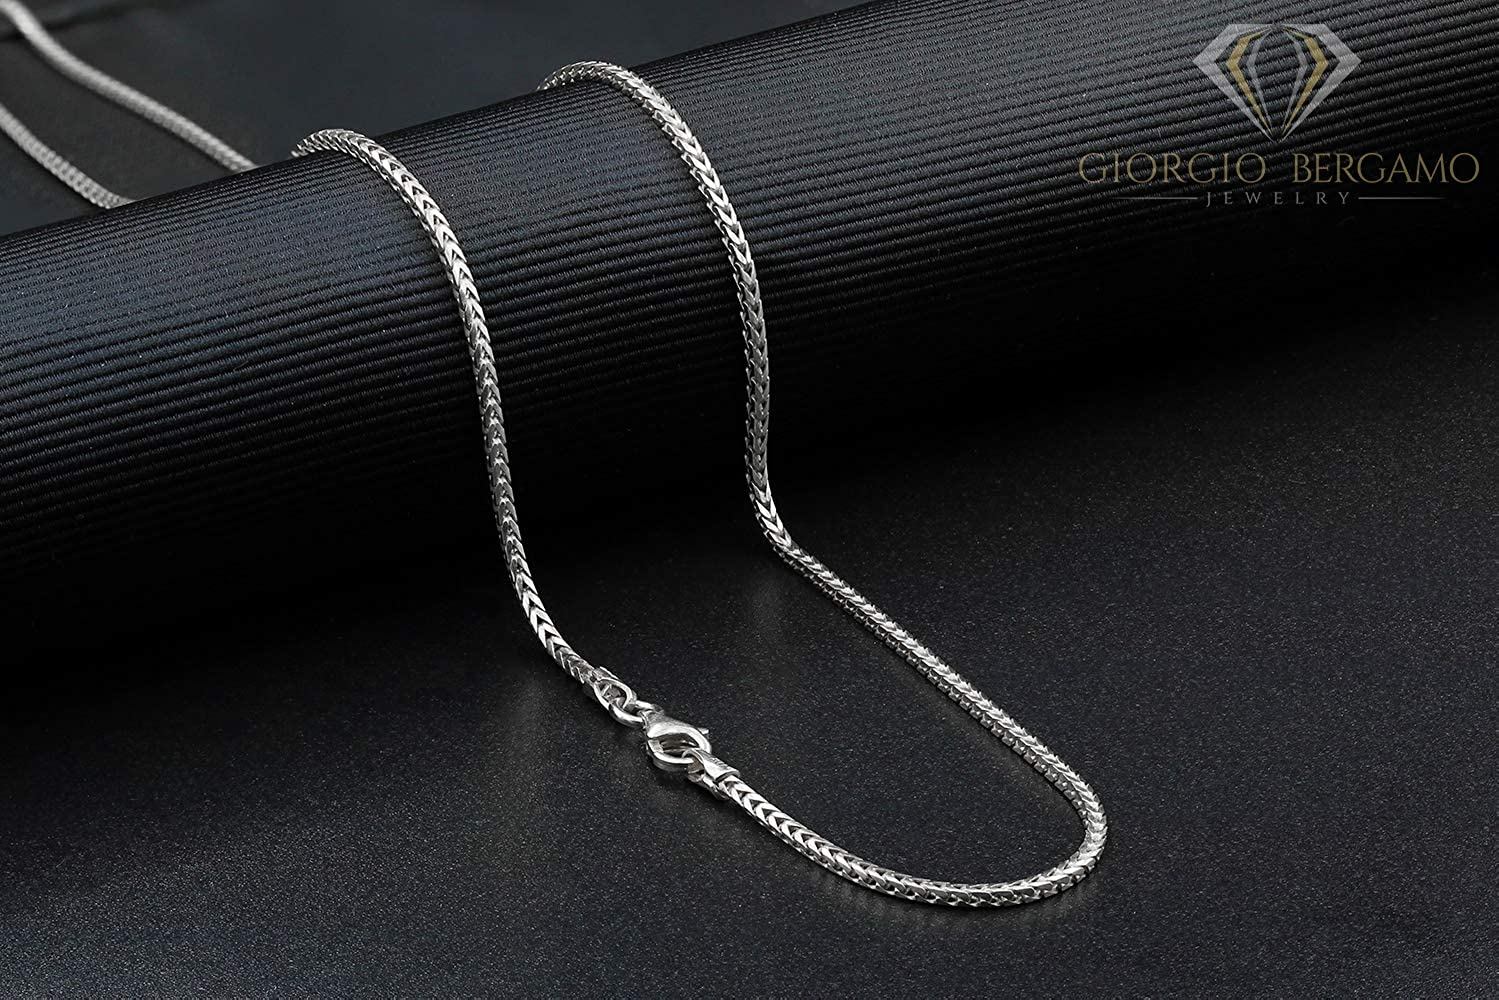 925 Sterling Silver Nickel-Free 2.5mm Popcorn Chain Necklace Made in Italy Bonus Polishing Cloth